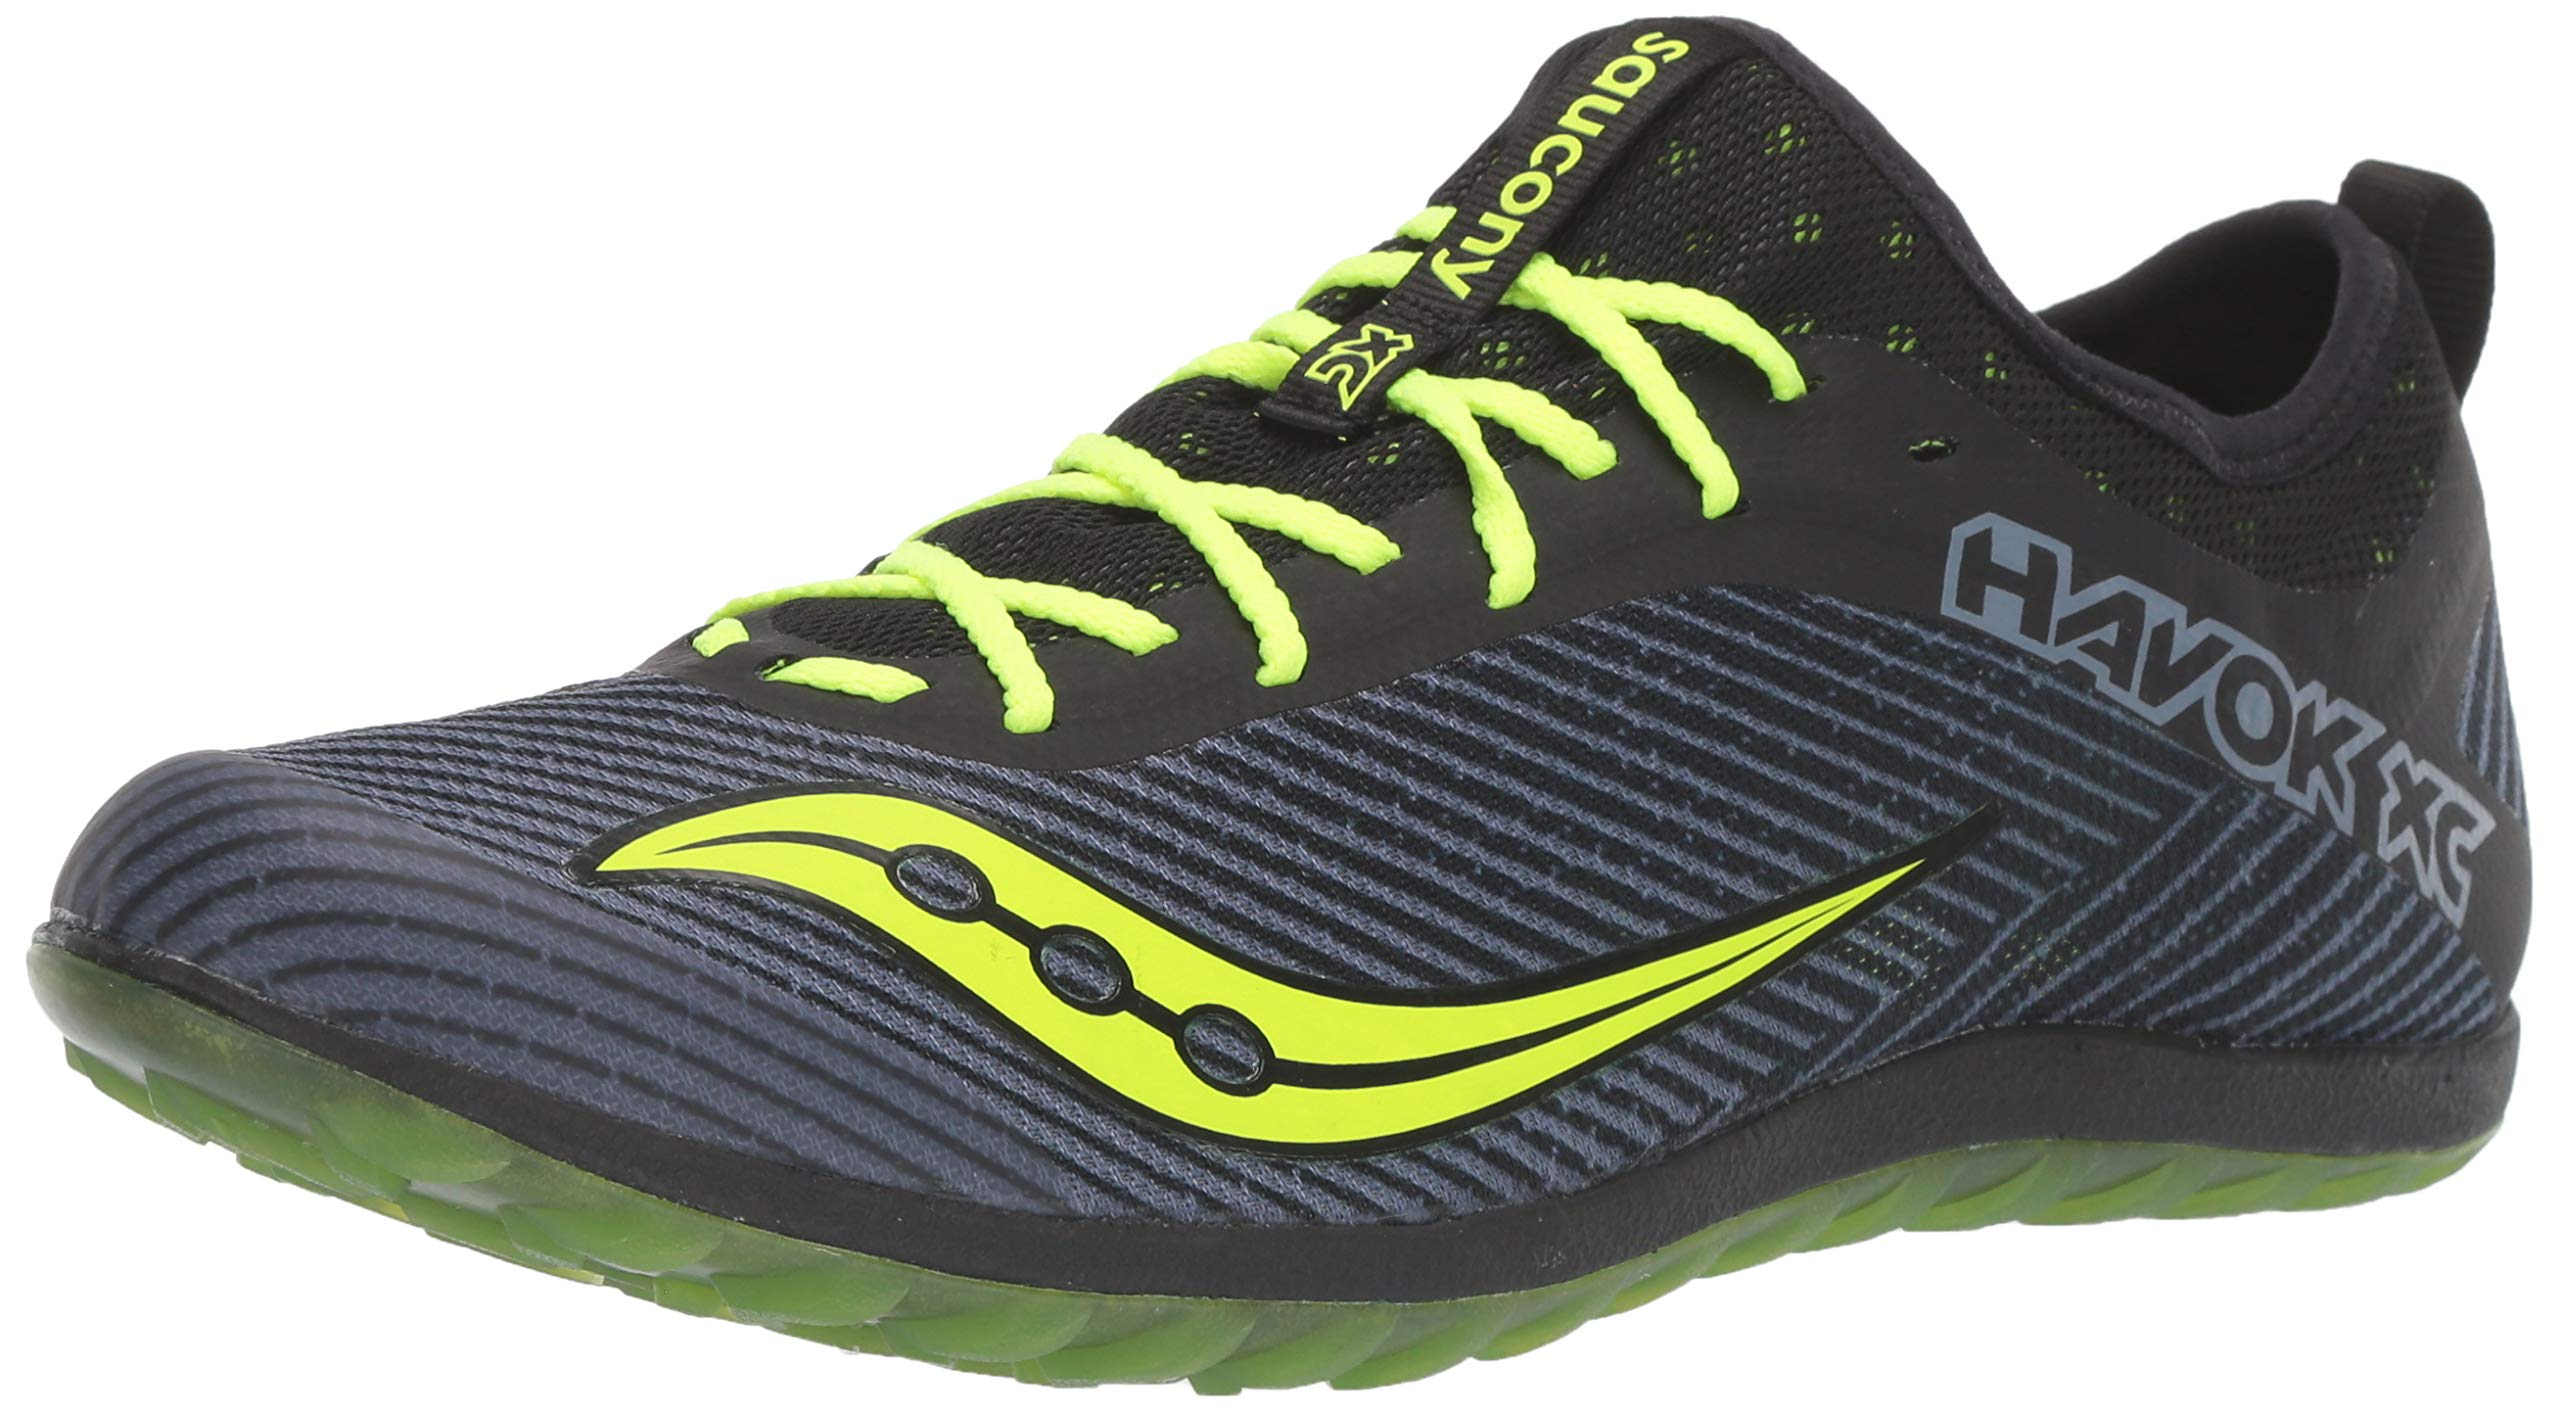 Saucony Men's Havok XC2 Flat Track and Field Shoe, Black/Citron, 7 Medium US by Saucony